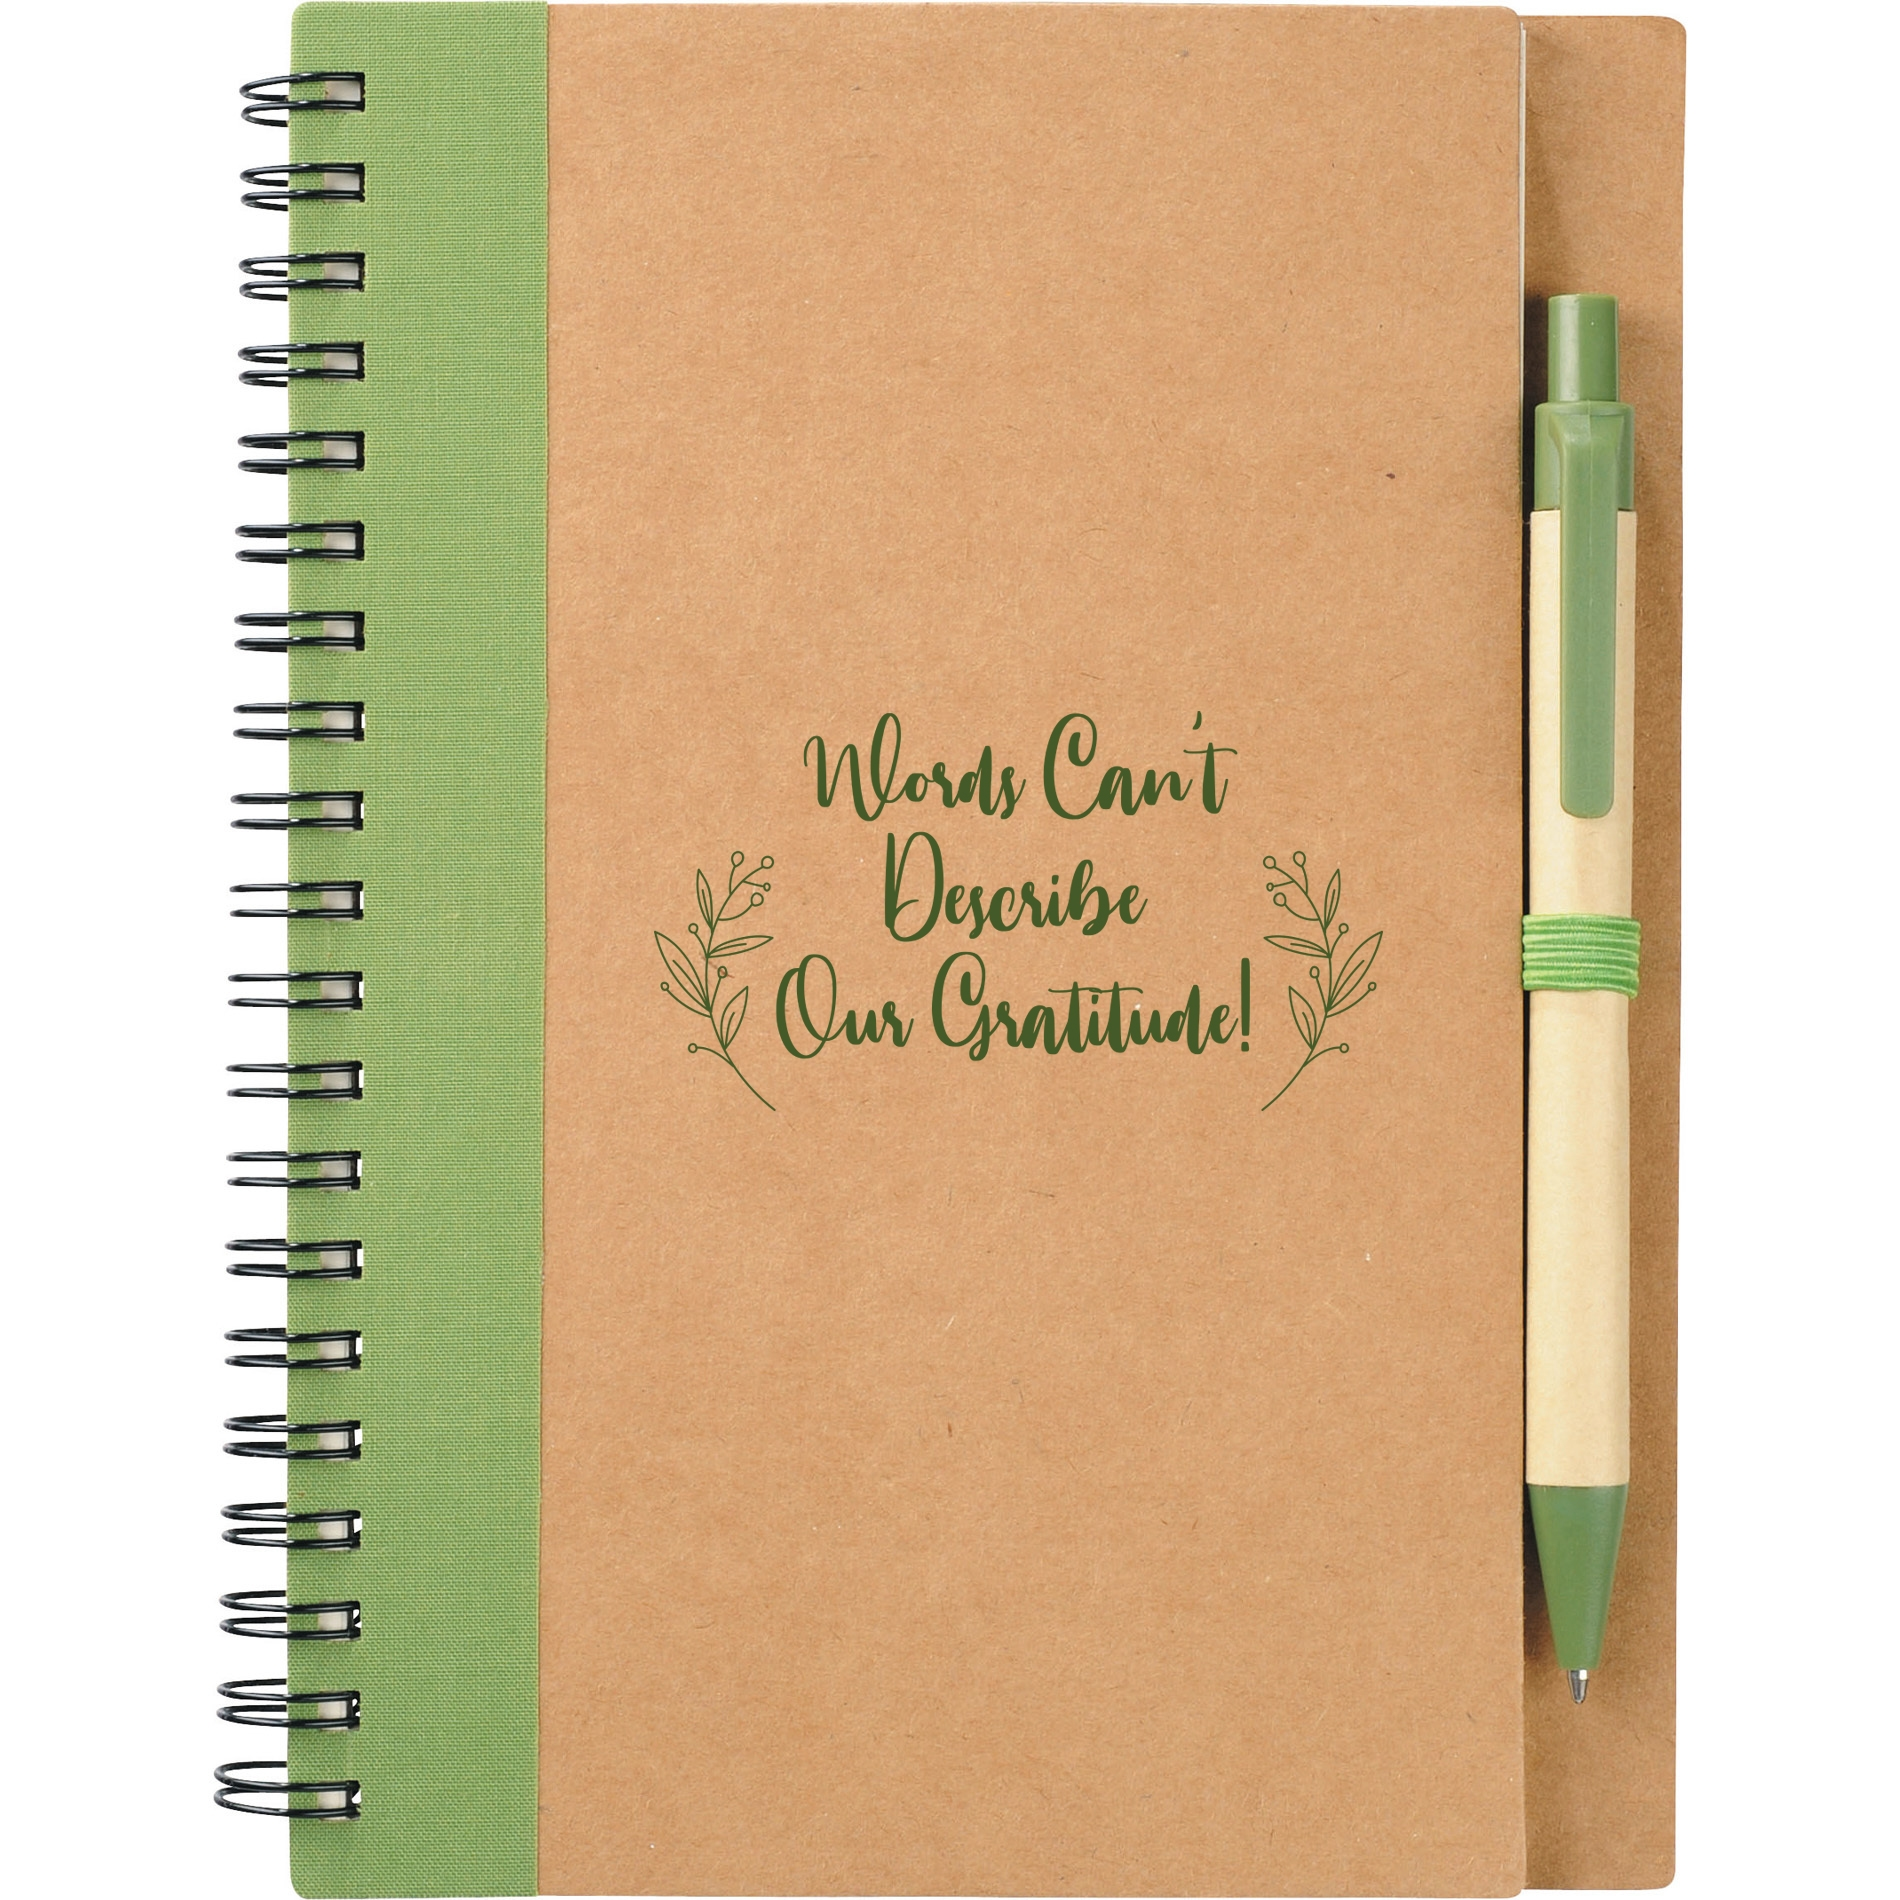 Recycled notebook and pen with volunteer appreciation logo